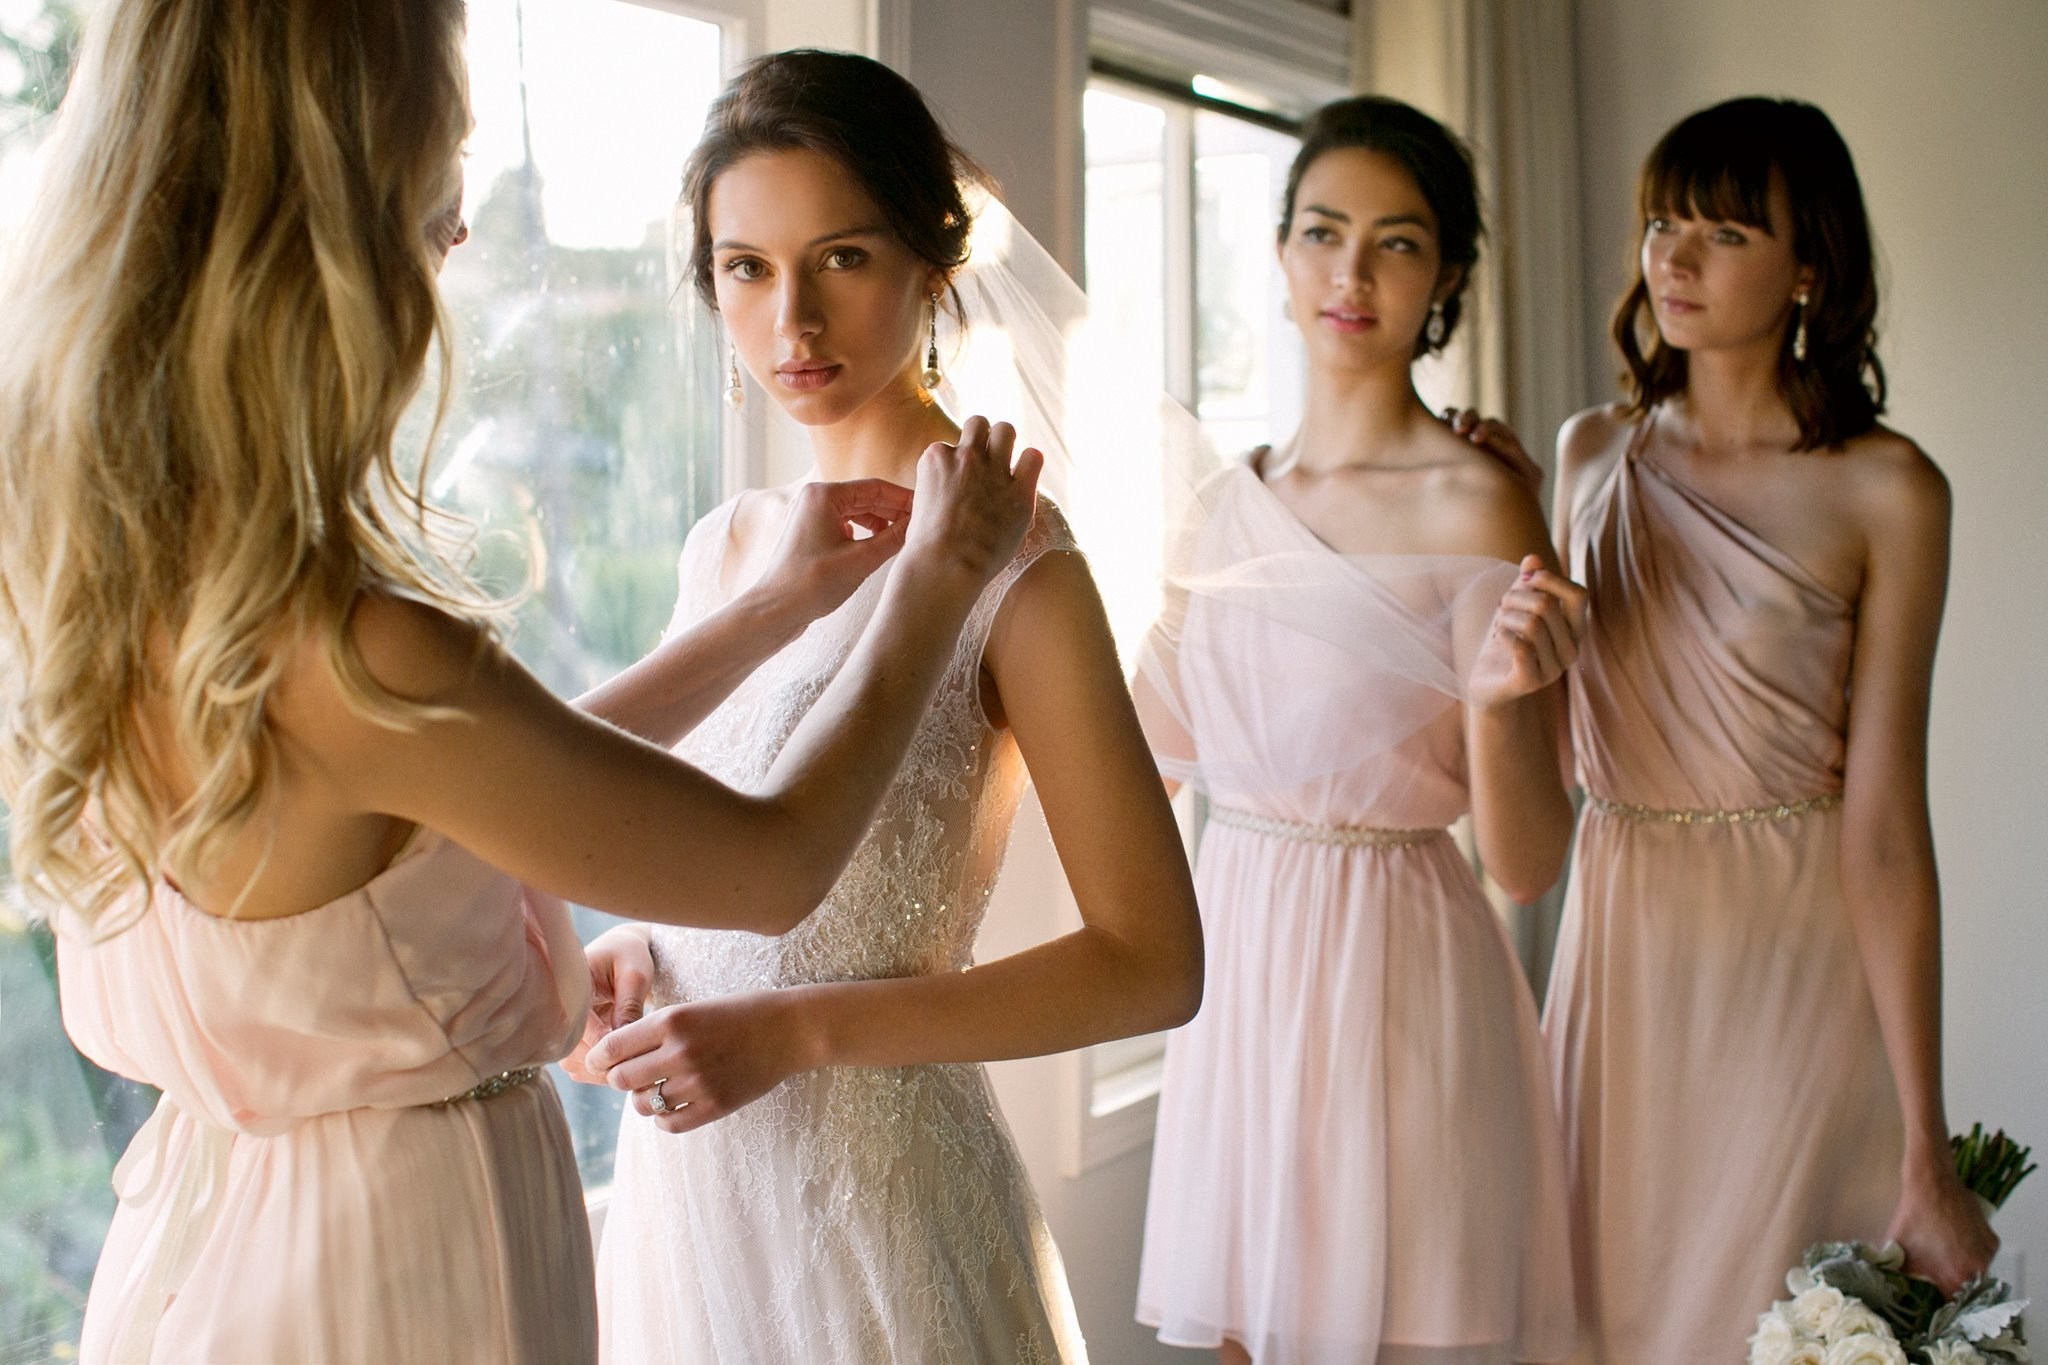 Top 4 picks for bridesmaid dresses rental sites everafterguide vow to be chic ombrellifo Gallery